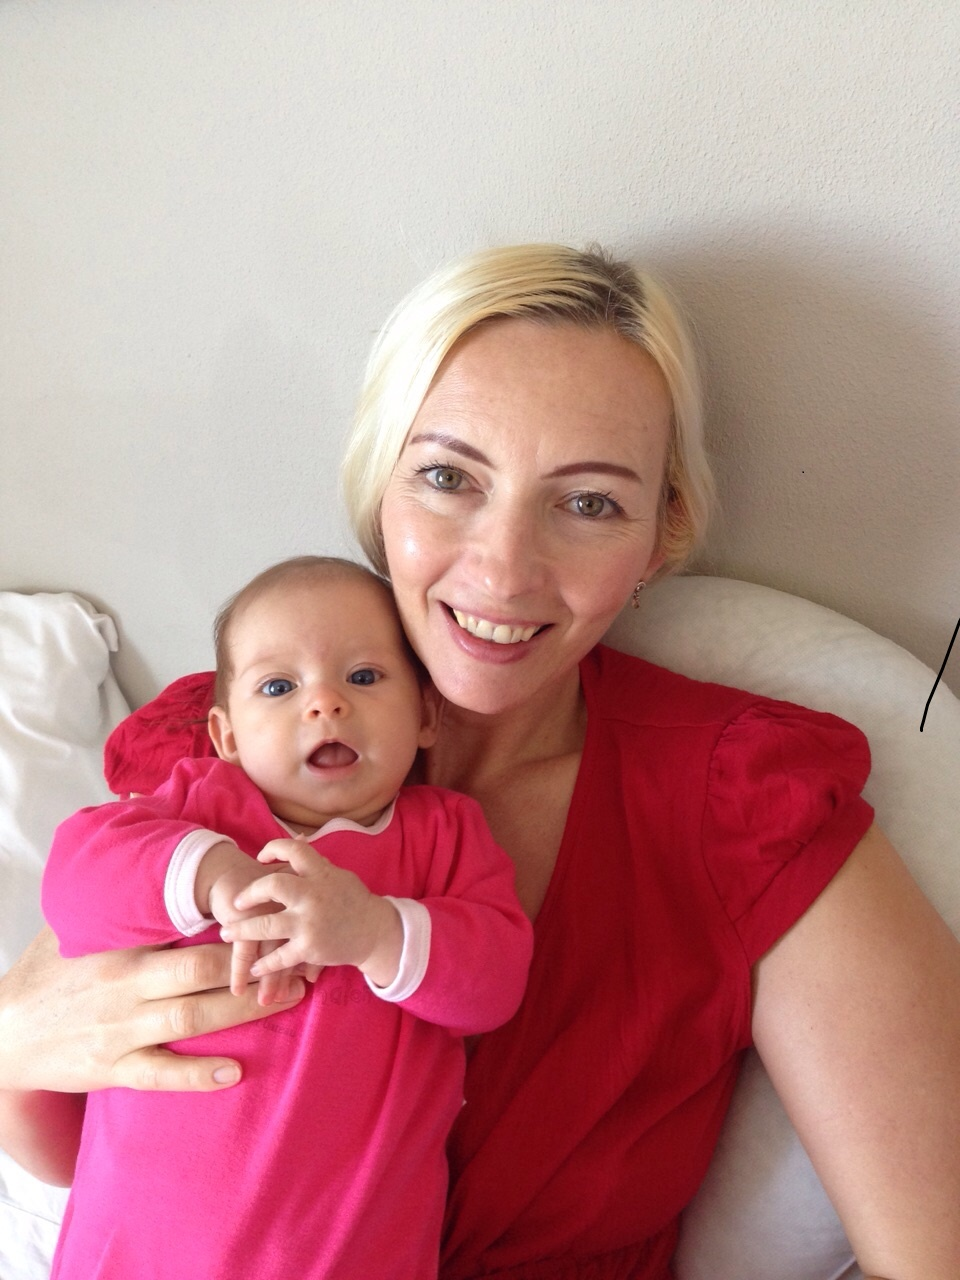 Why Home Birth? Seven South African women share their